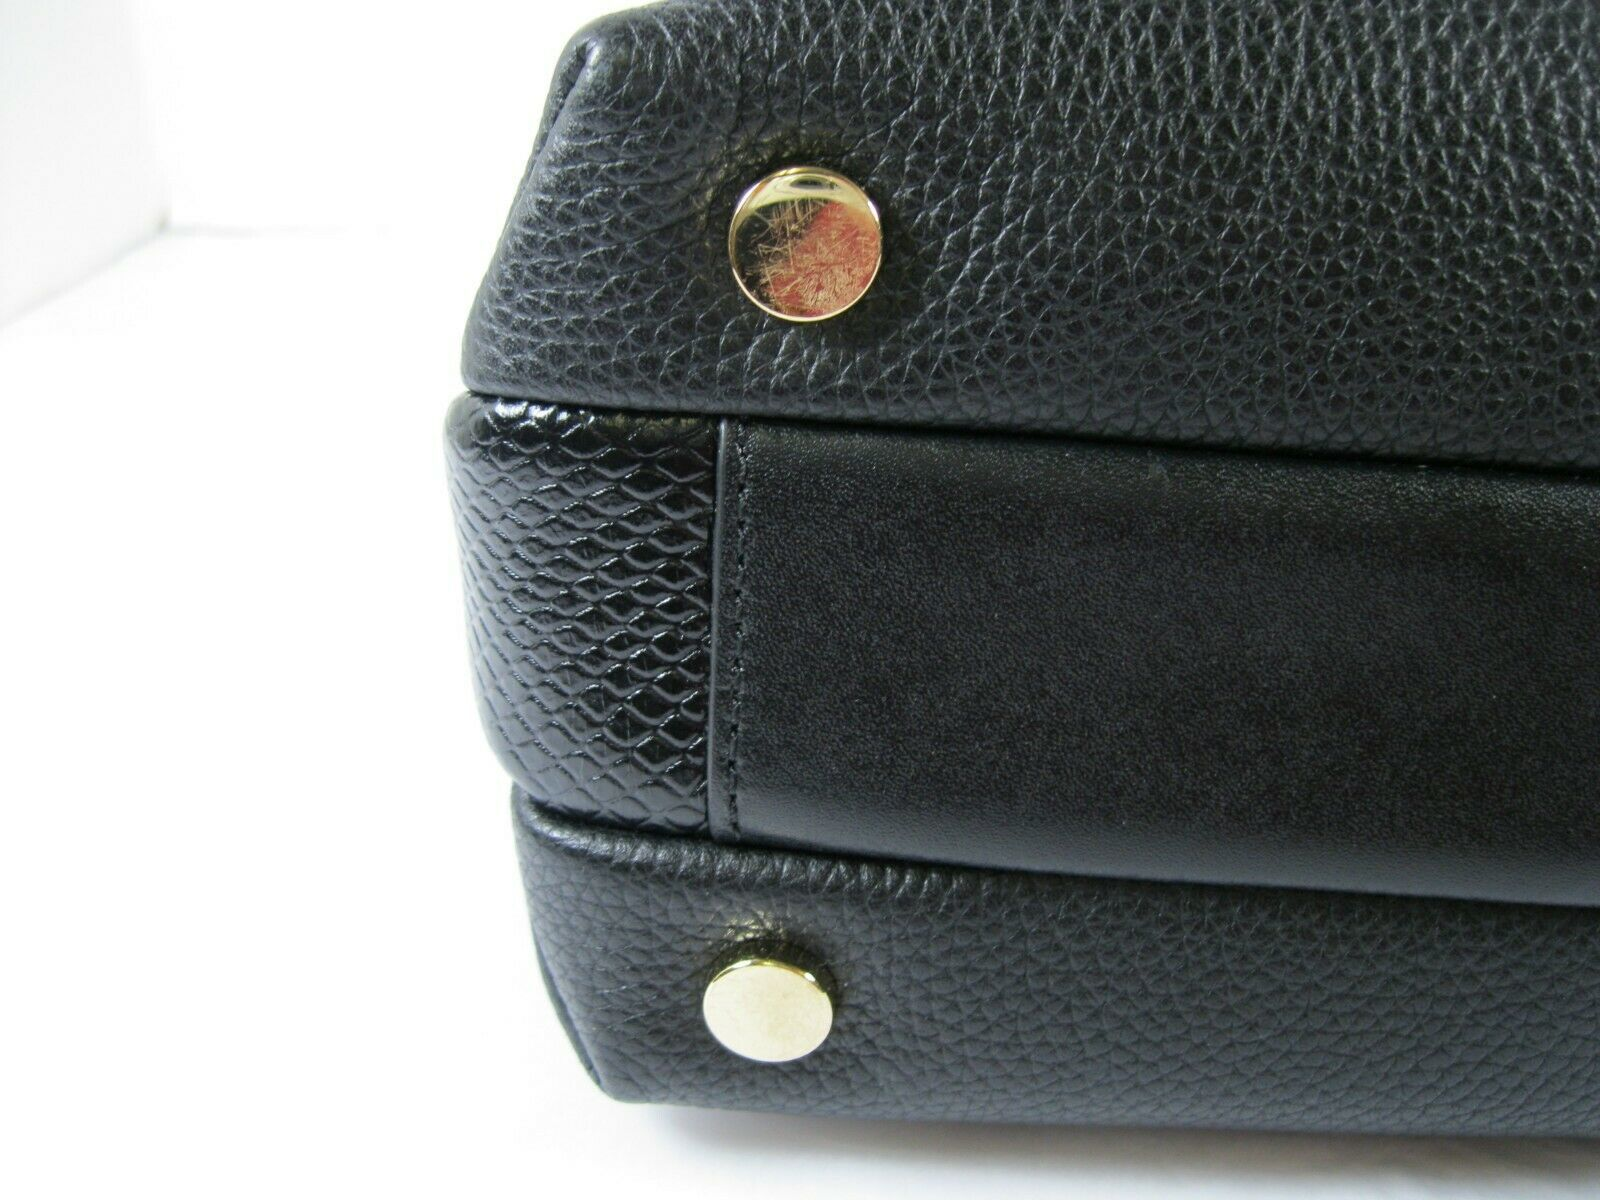 Michael Kors NEW Black Leather Crossbody Messenger Hand Bag Pebbled Gold X image 7